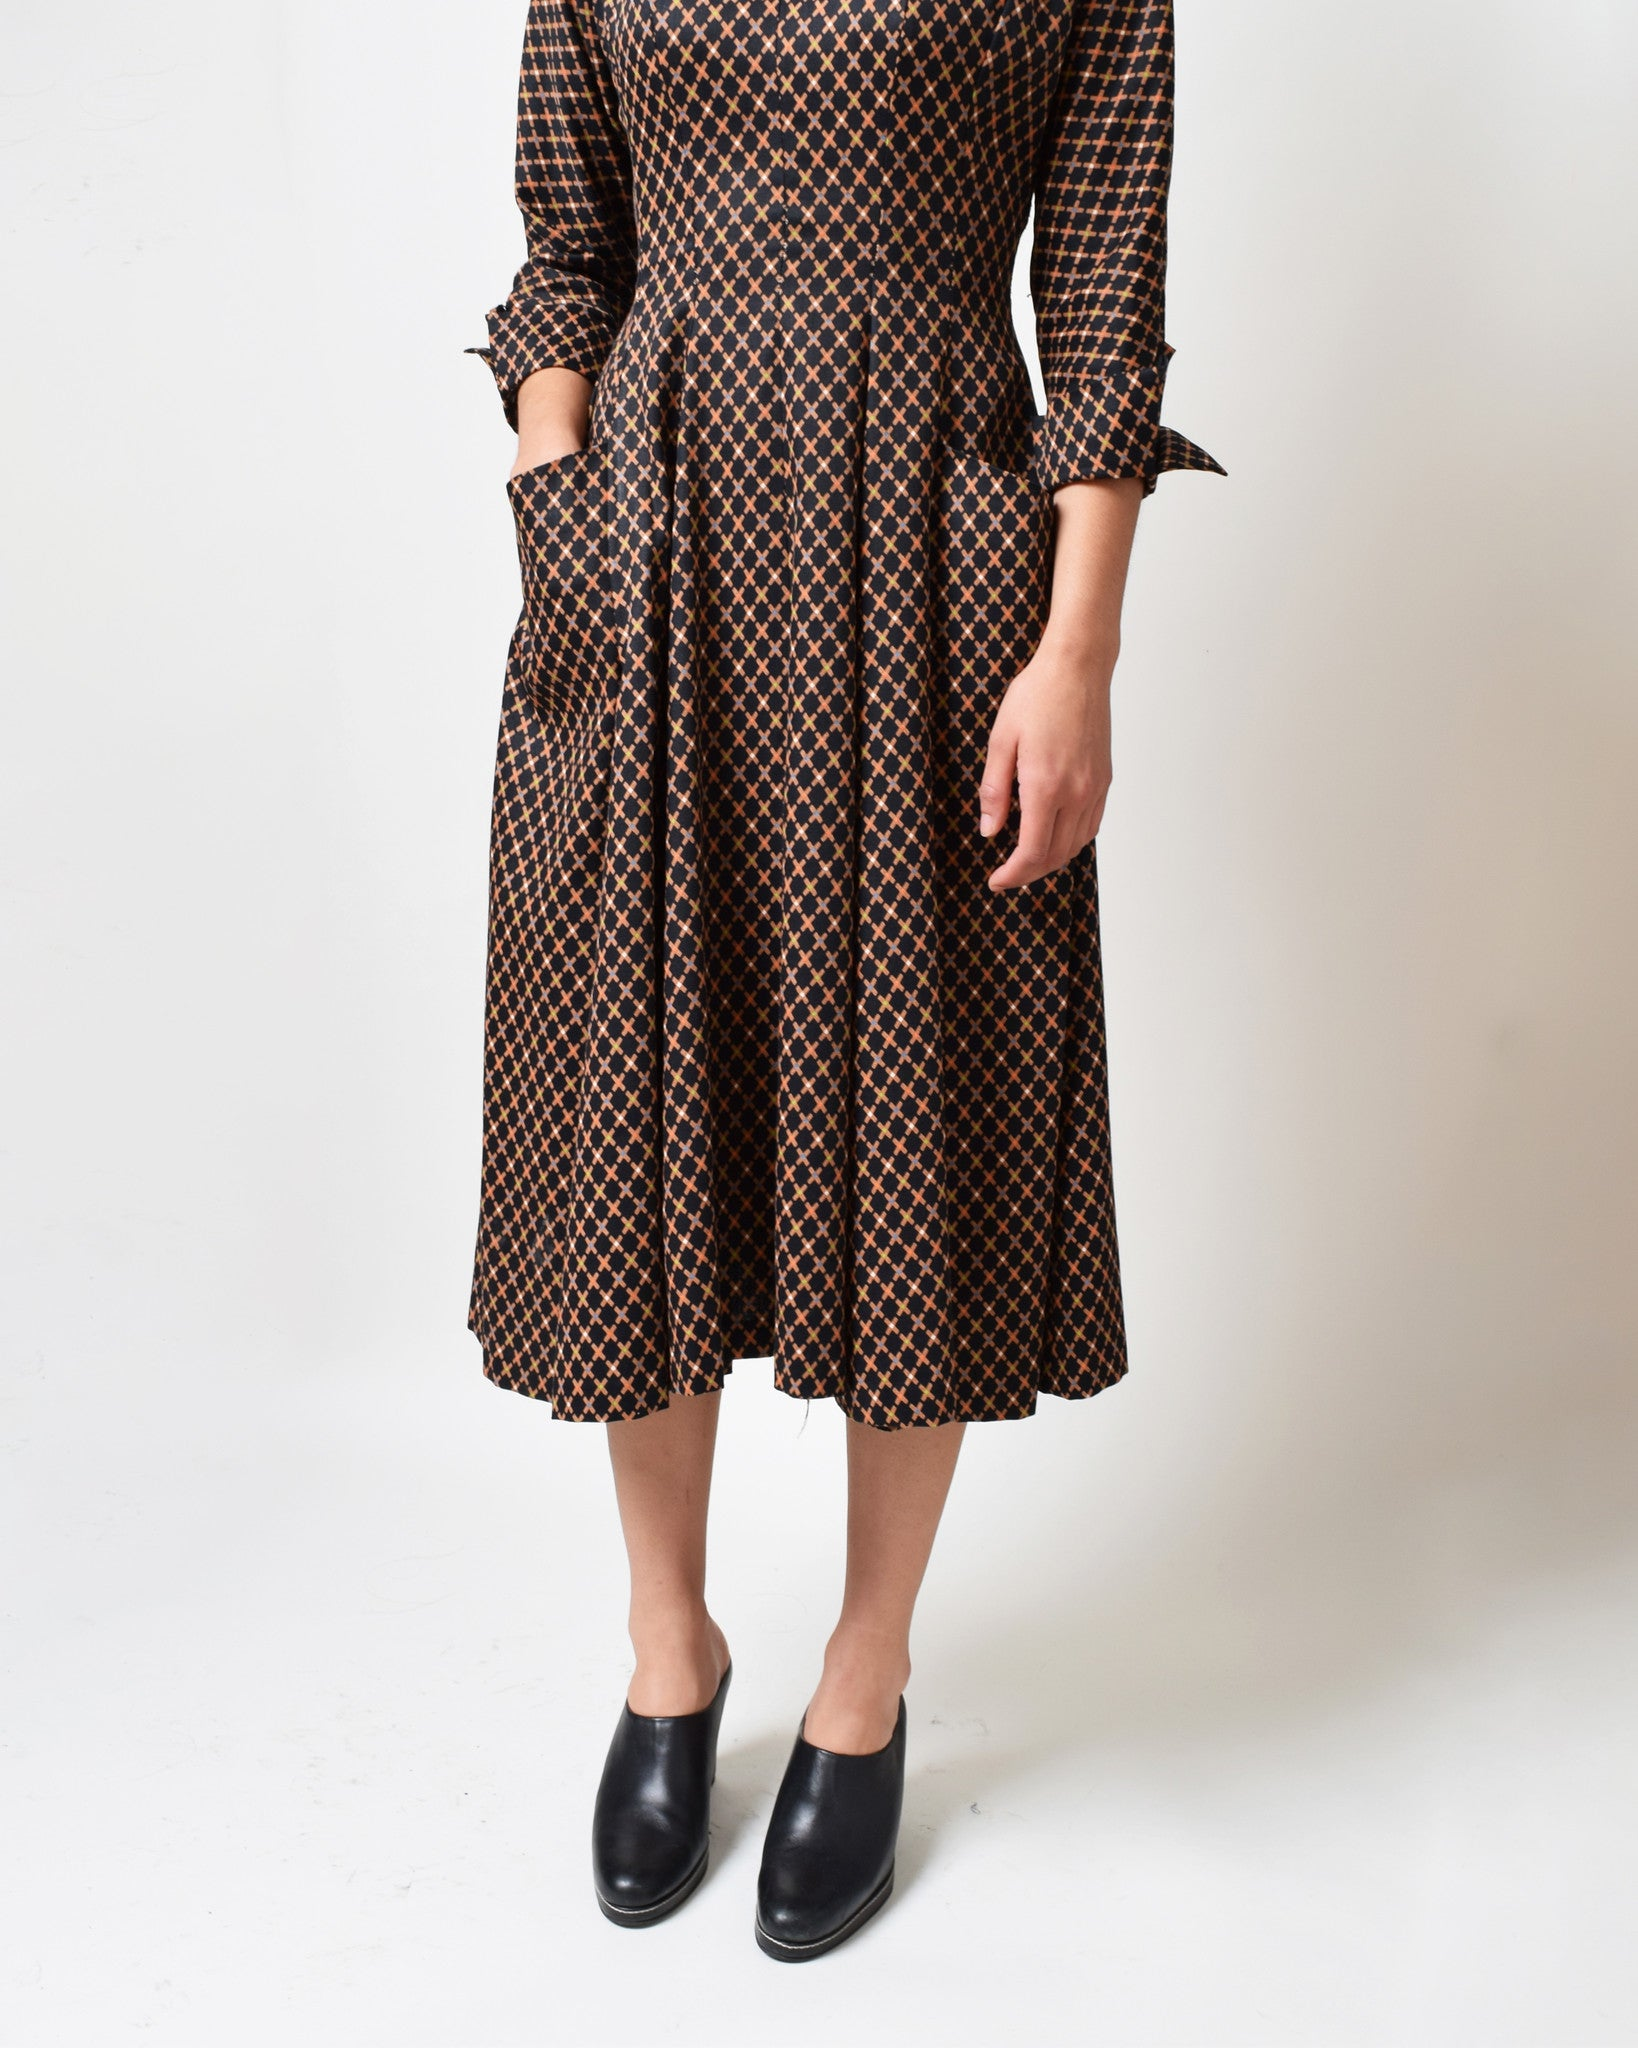 Vintage 1950s Murray Millman Shirtwaist Dress